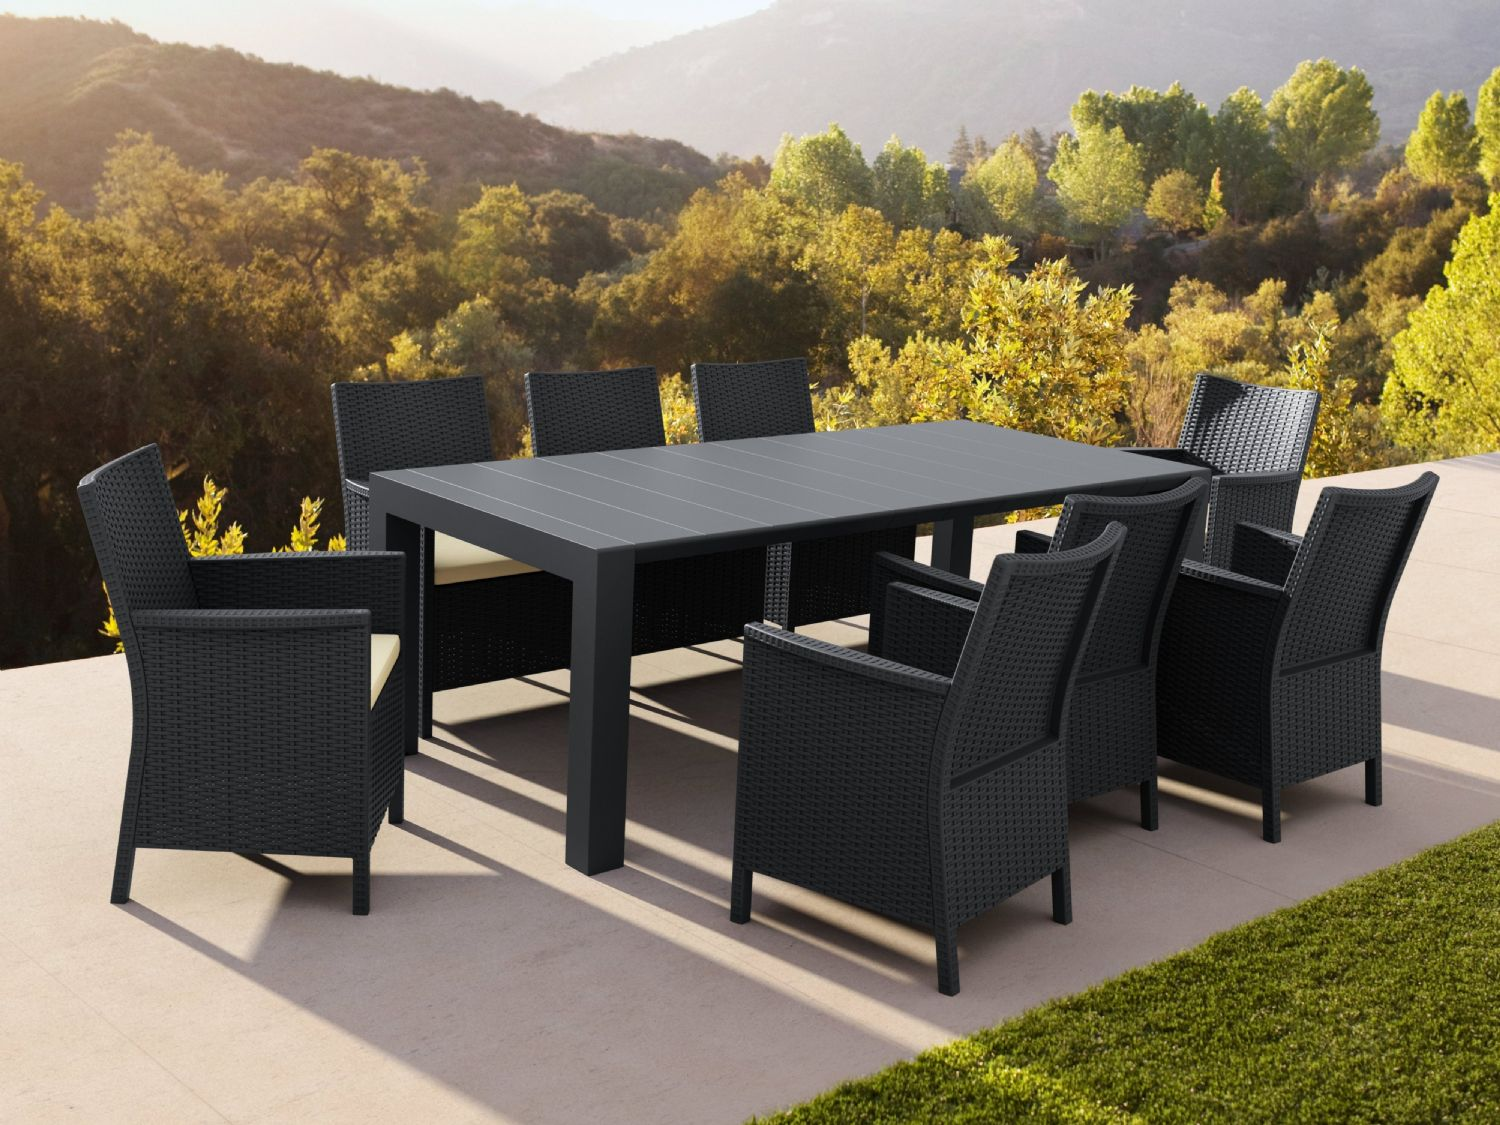 California Extendable Dining Set 9 Piece White ISP8066S-WH - 2